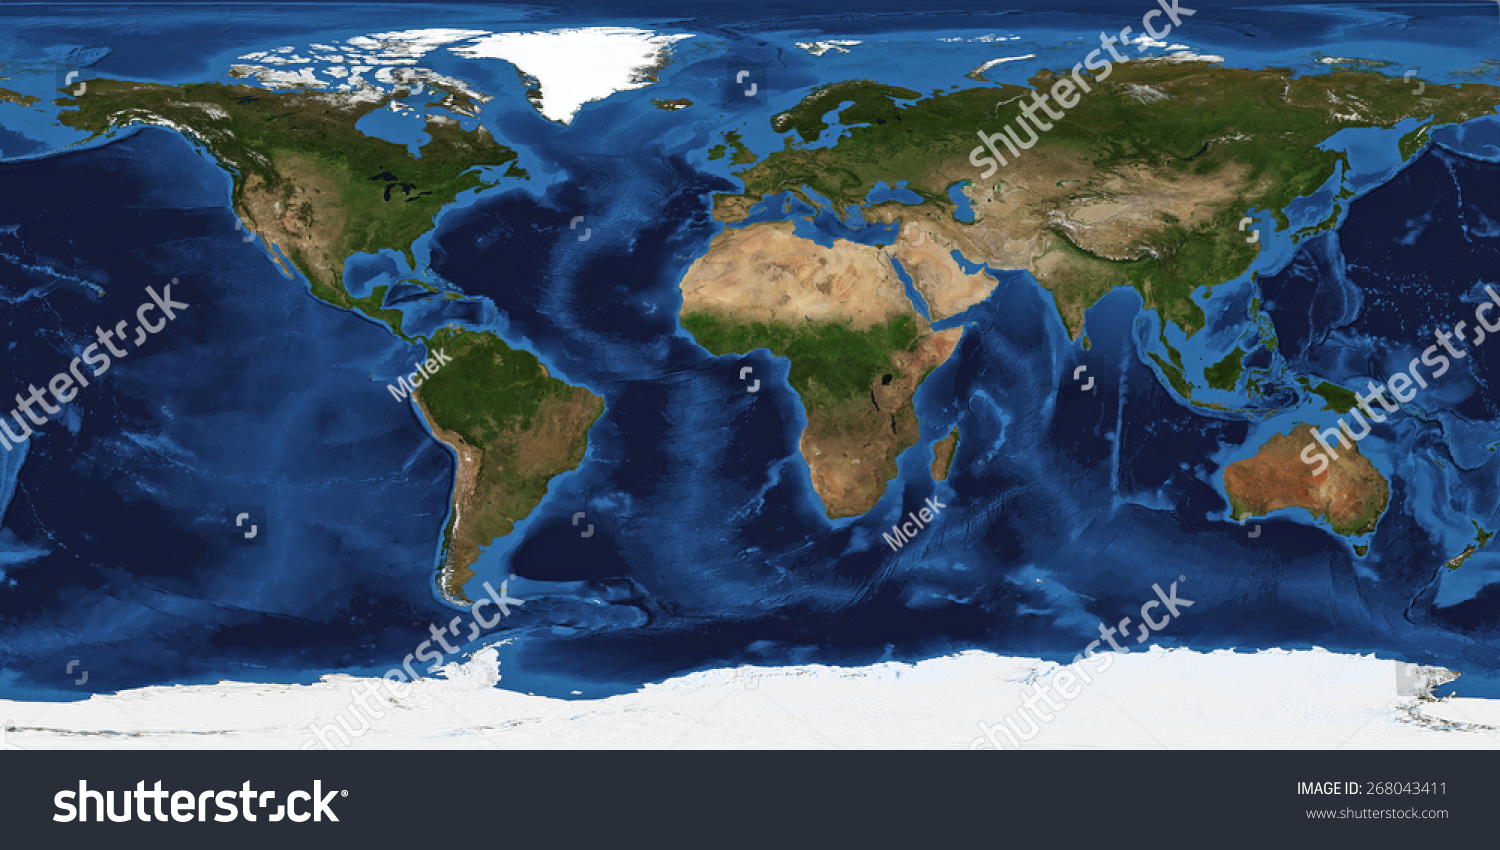 Royalty Free Stock Illustration Of Xxl Size Physical World Map